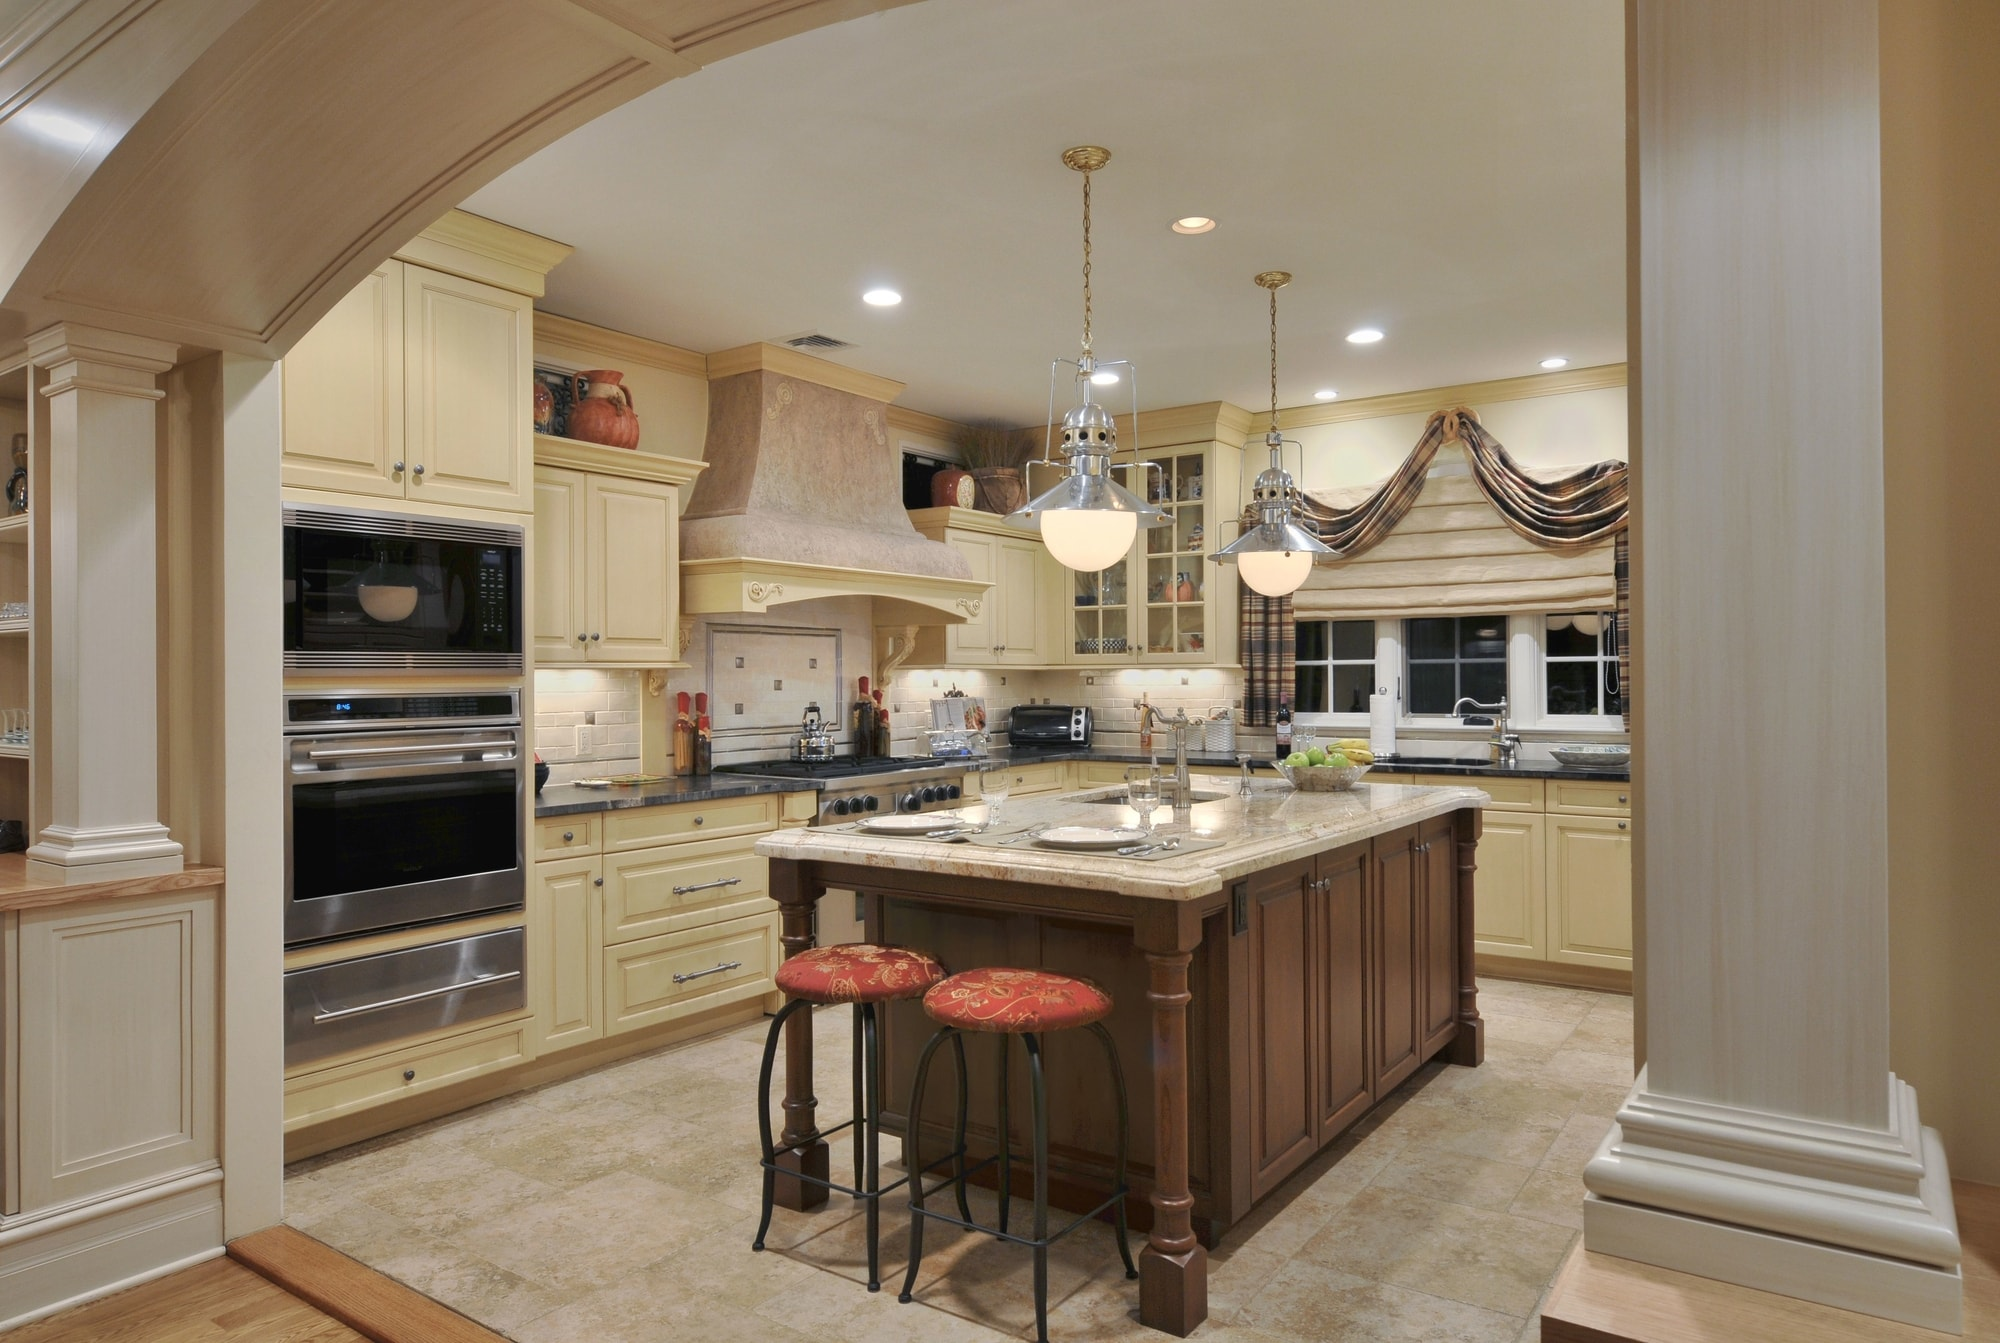 Traditional style kitchen with tiled floor and center island